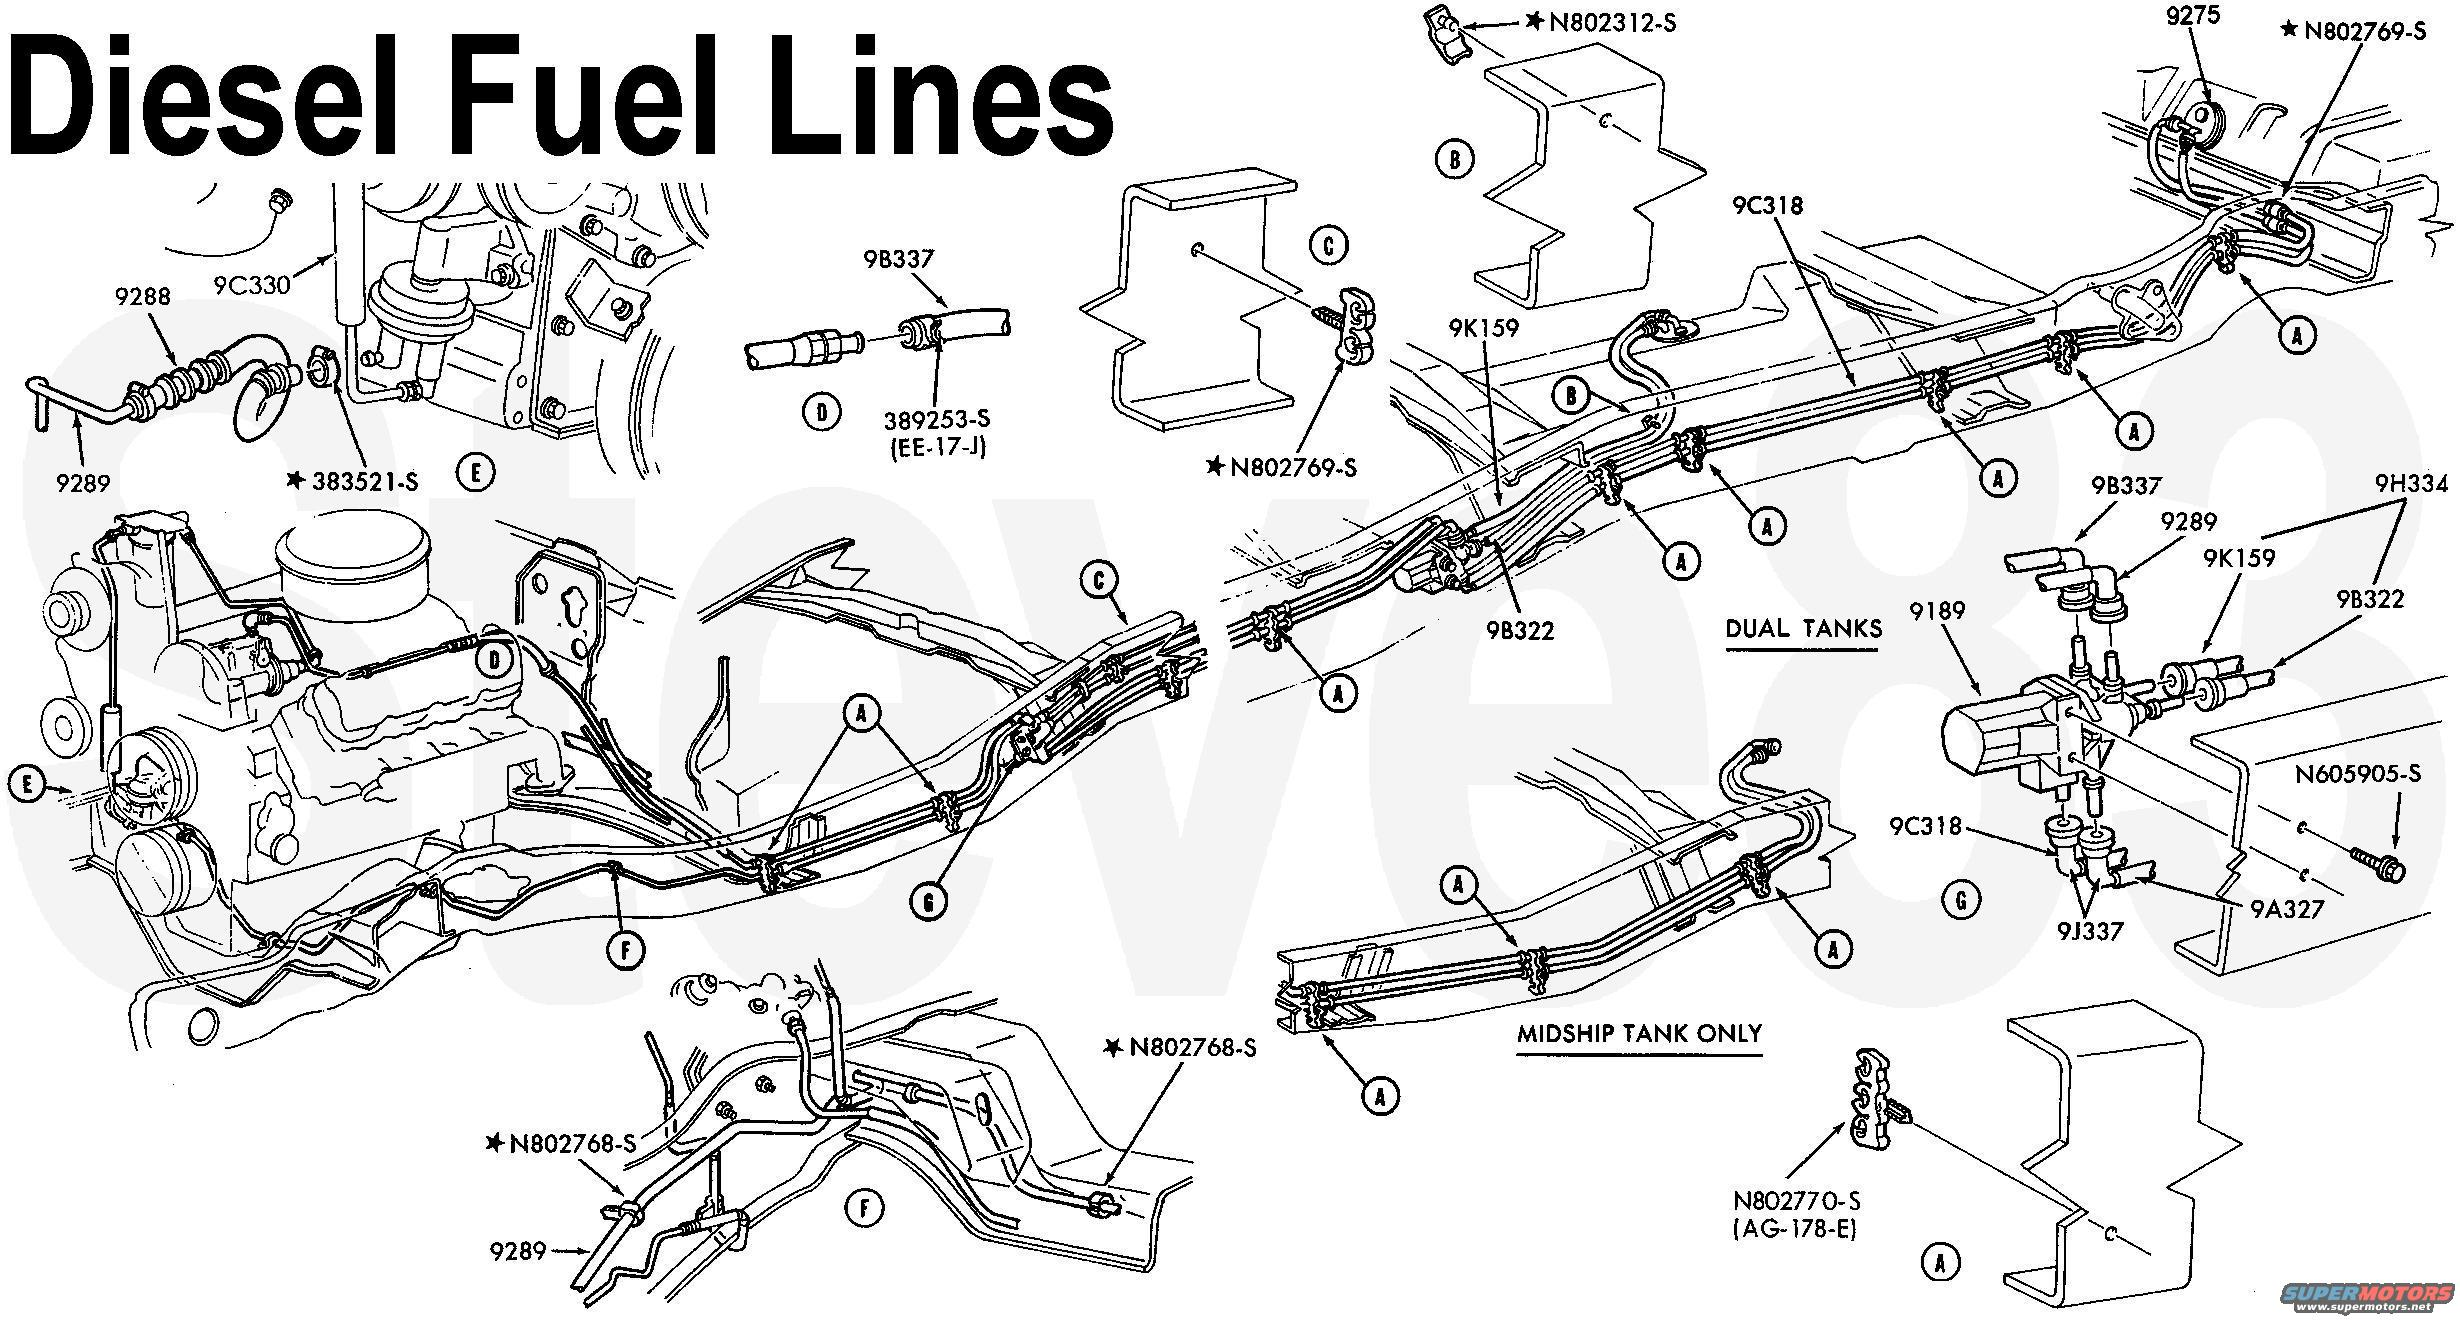 Ford 73 Diesel Fuel Line Diagram Great Design Of Wiring Ignition 2002 7 3 Powerstroke Filter Housing Get Free System 2000